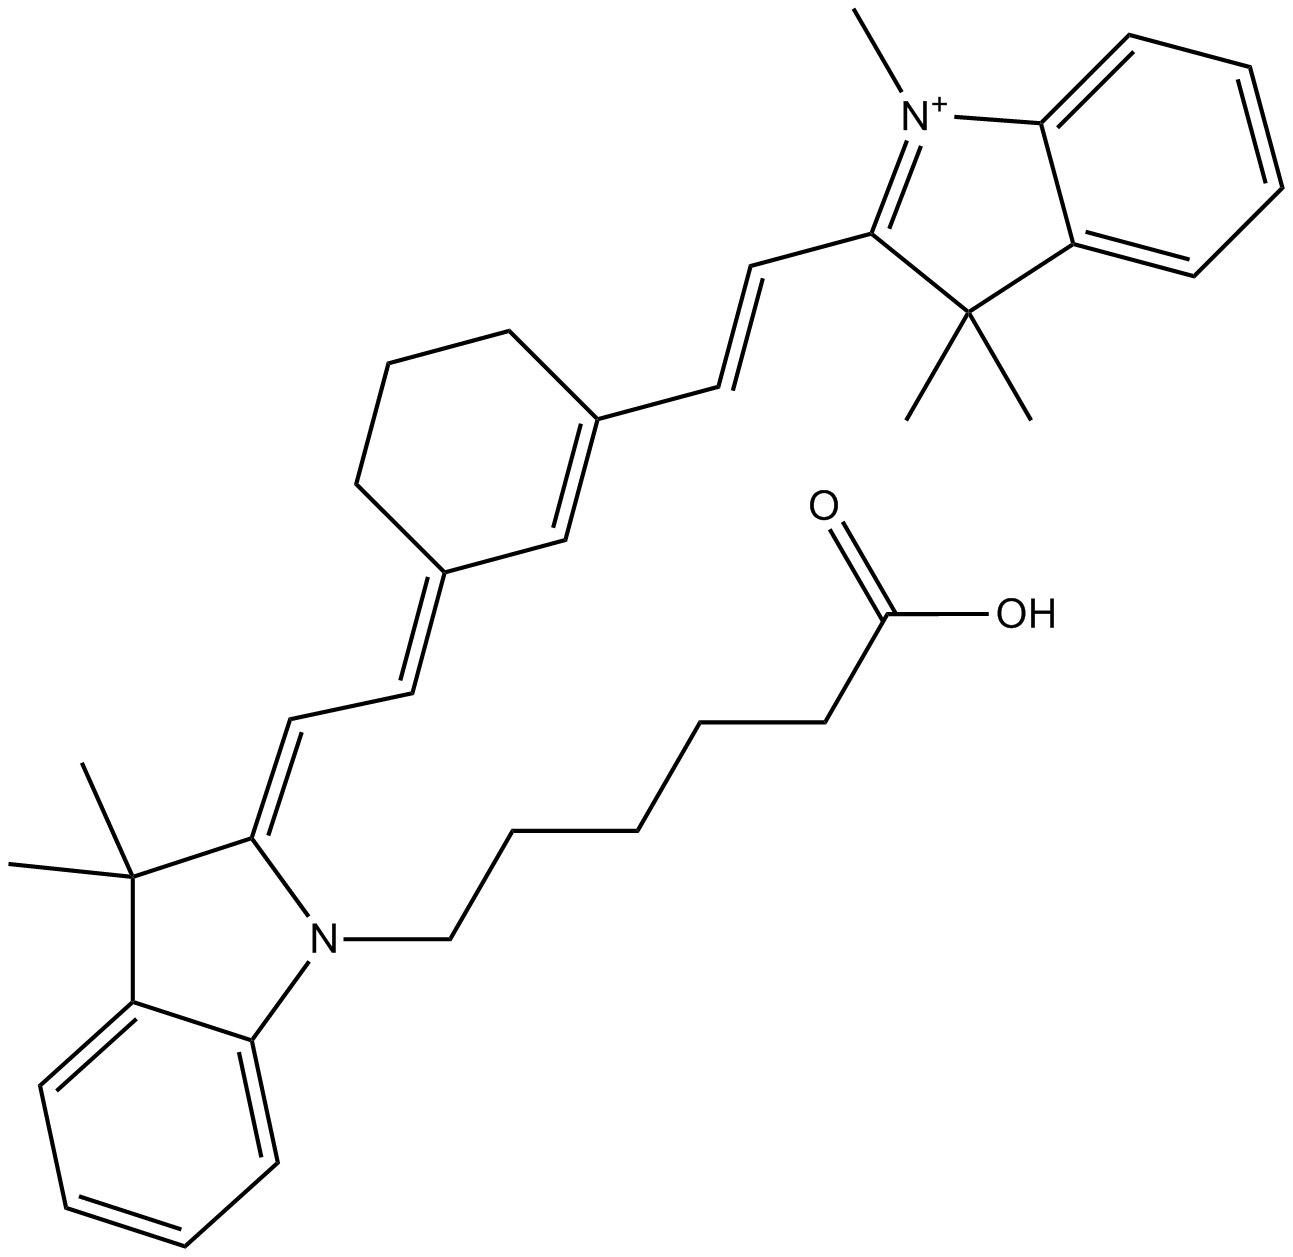 Cy7 carboxylic acid (non-sulfonated)